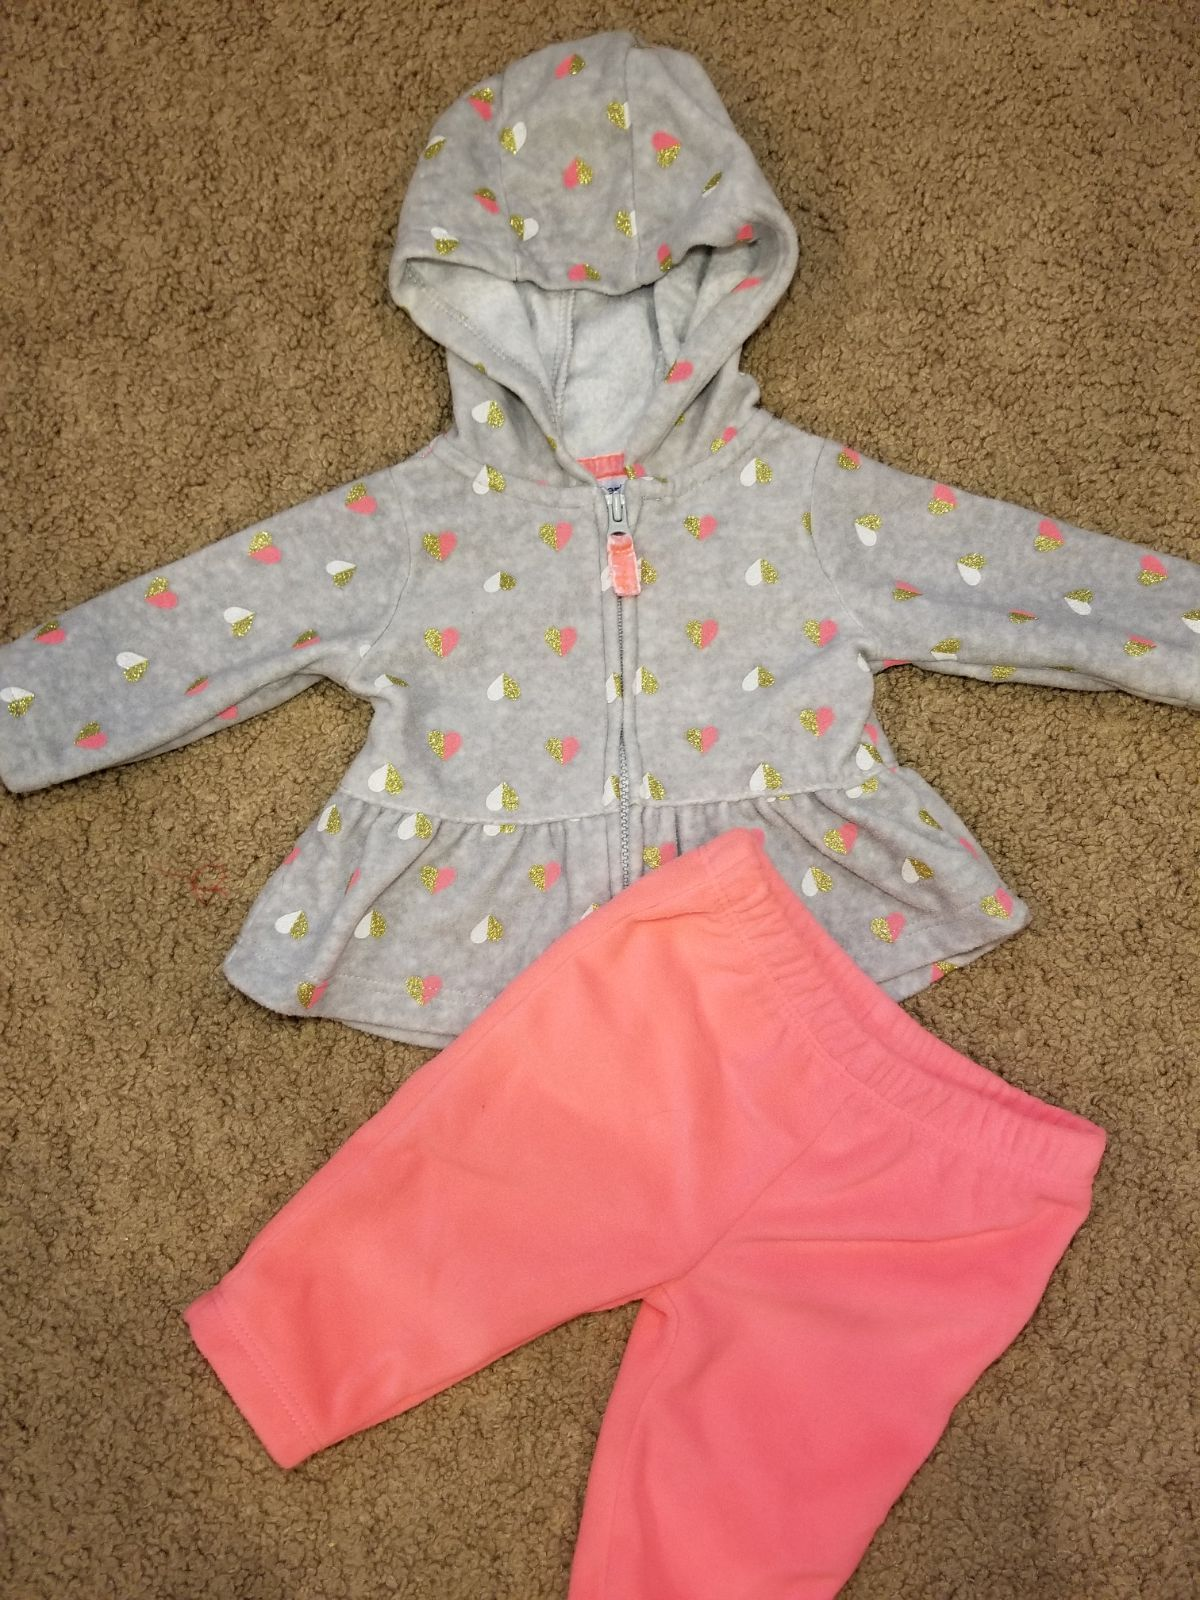 c5c4b8437 Brand new!!! Super adorable Carter's 2 piece fleece zip up hoodie and  pants. Size Newborn. So soft and warm! Just wait til you see how seriously  cute this ...